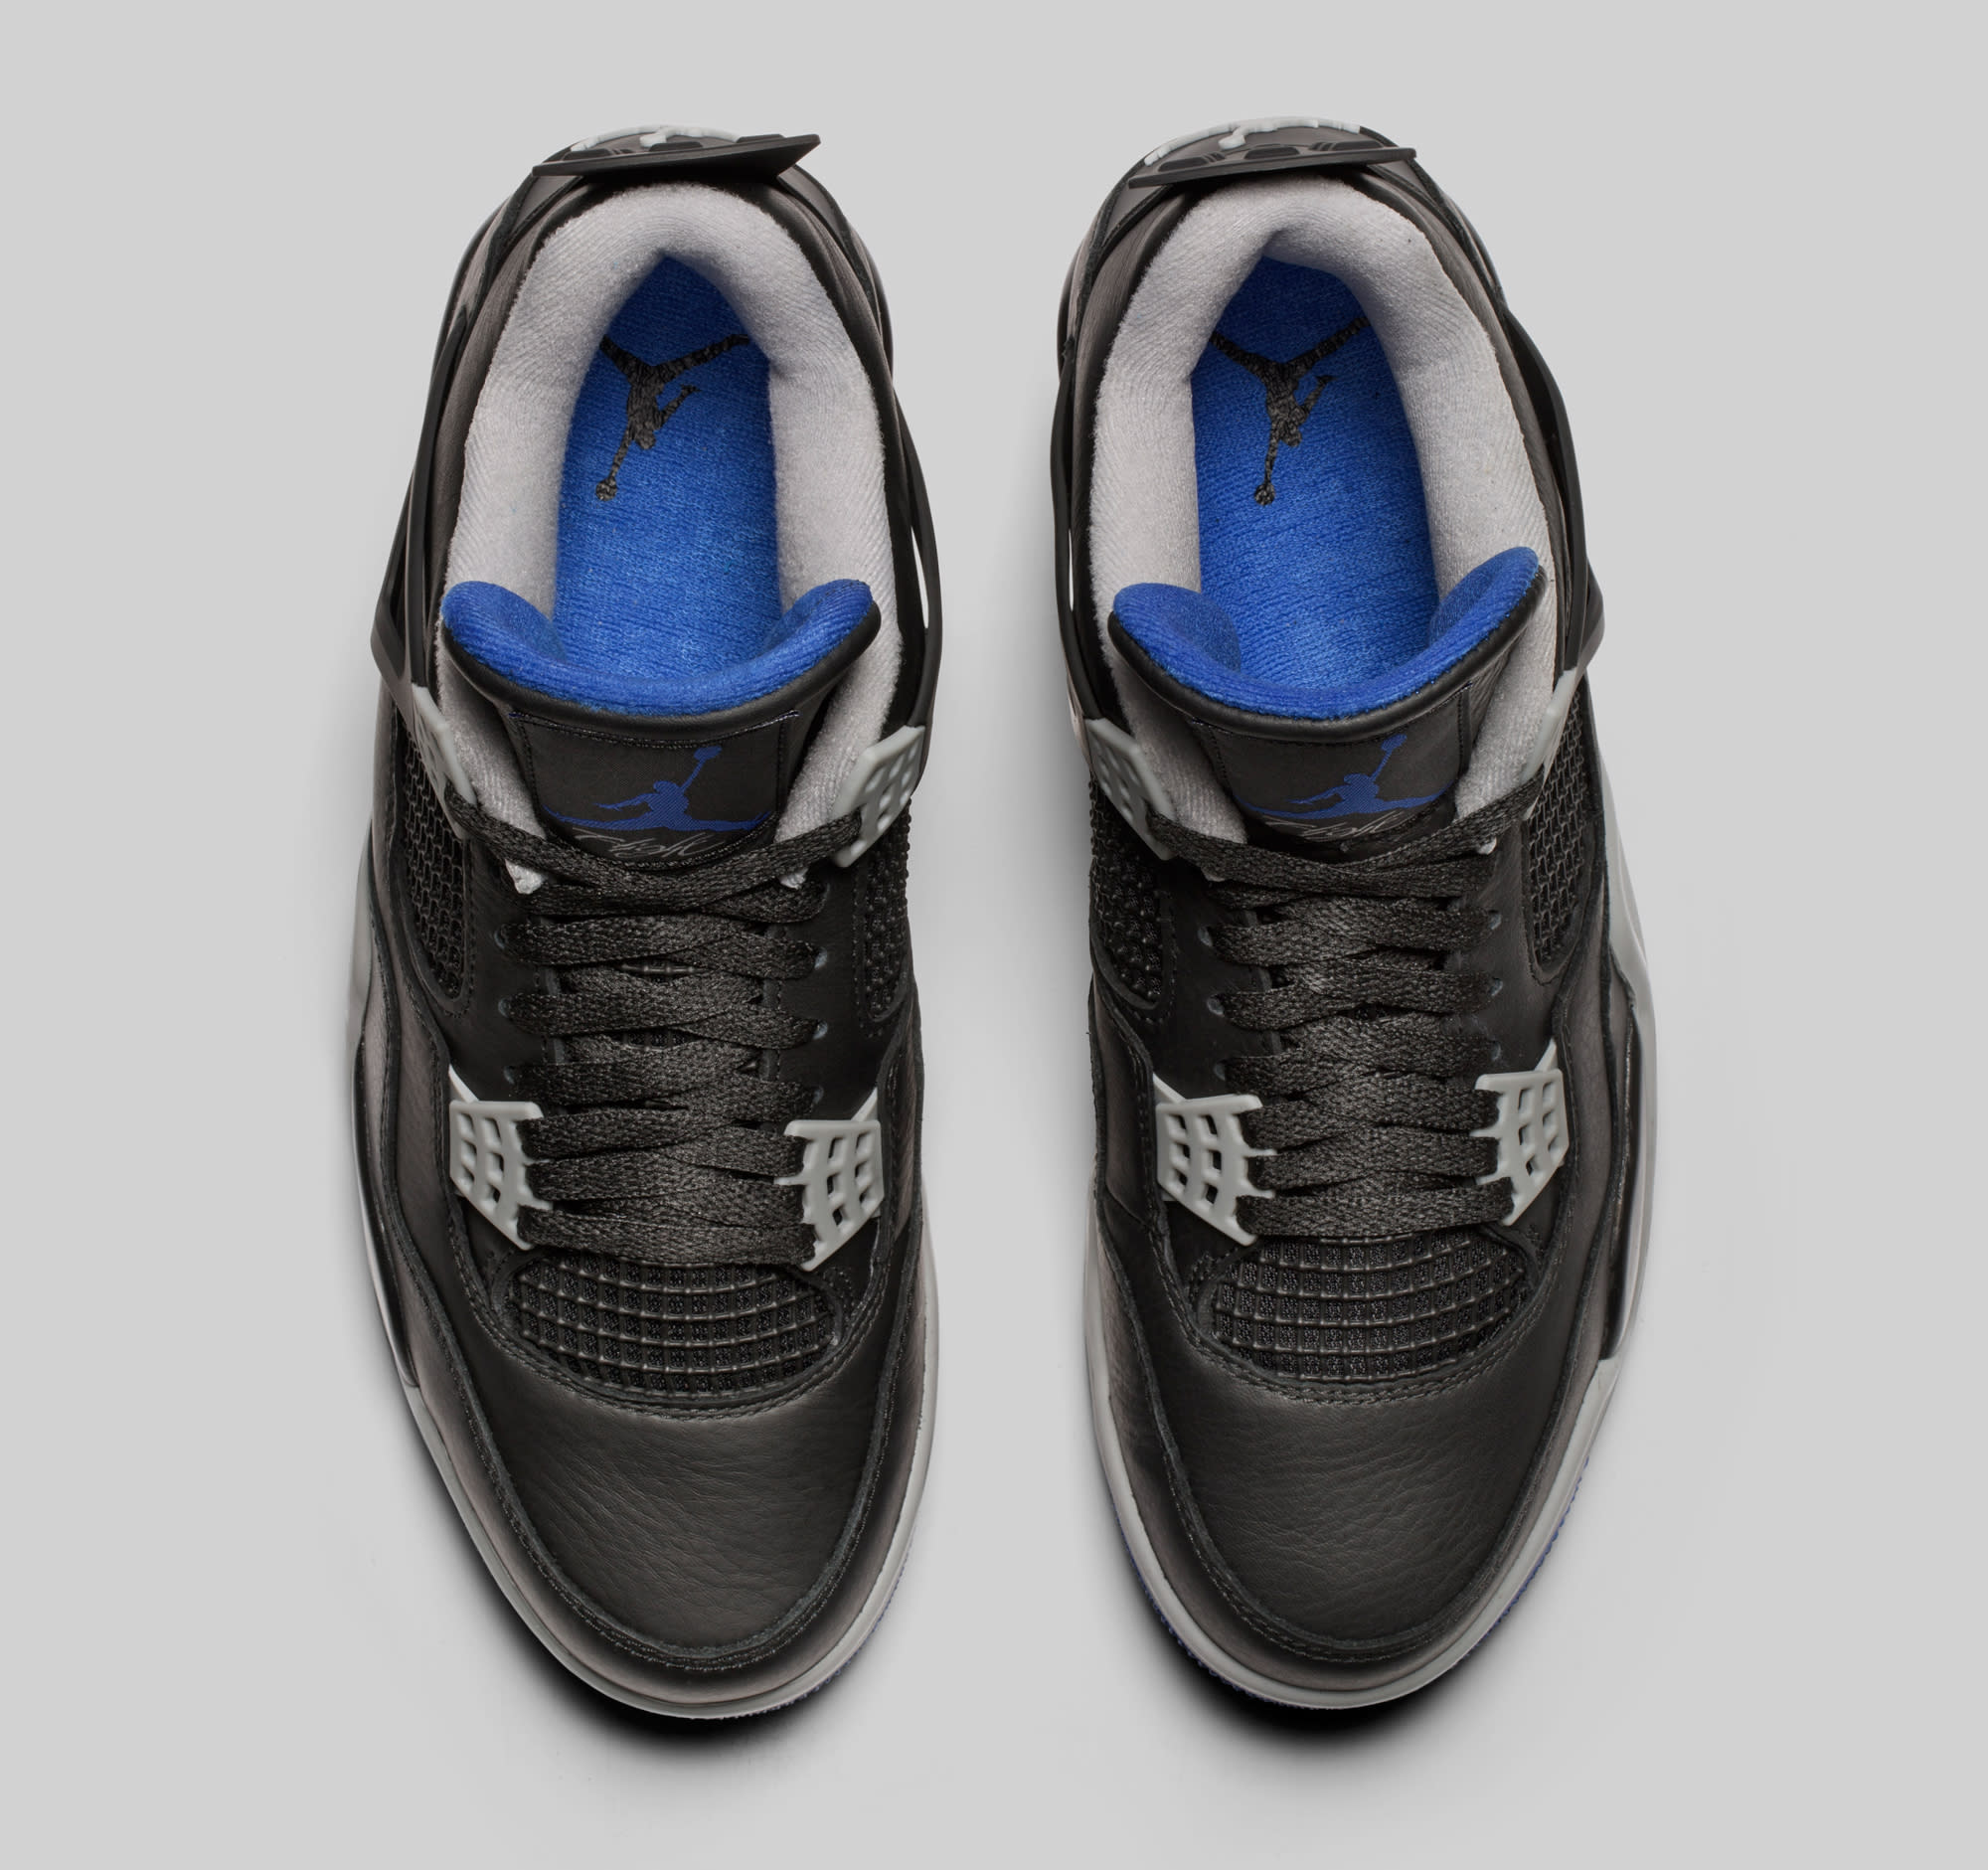 Air Jordan 4 Motorsports Alternate Top